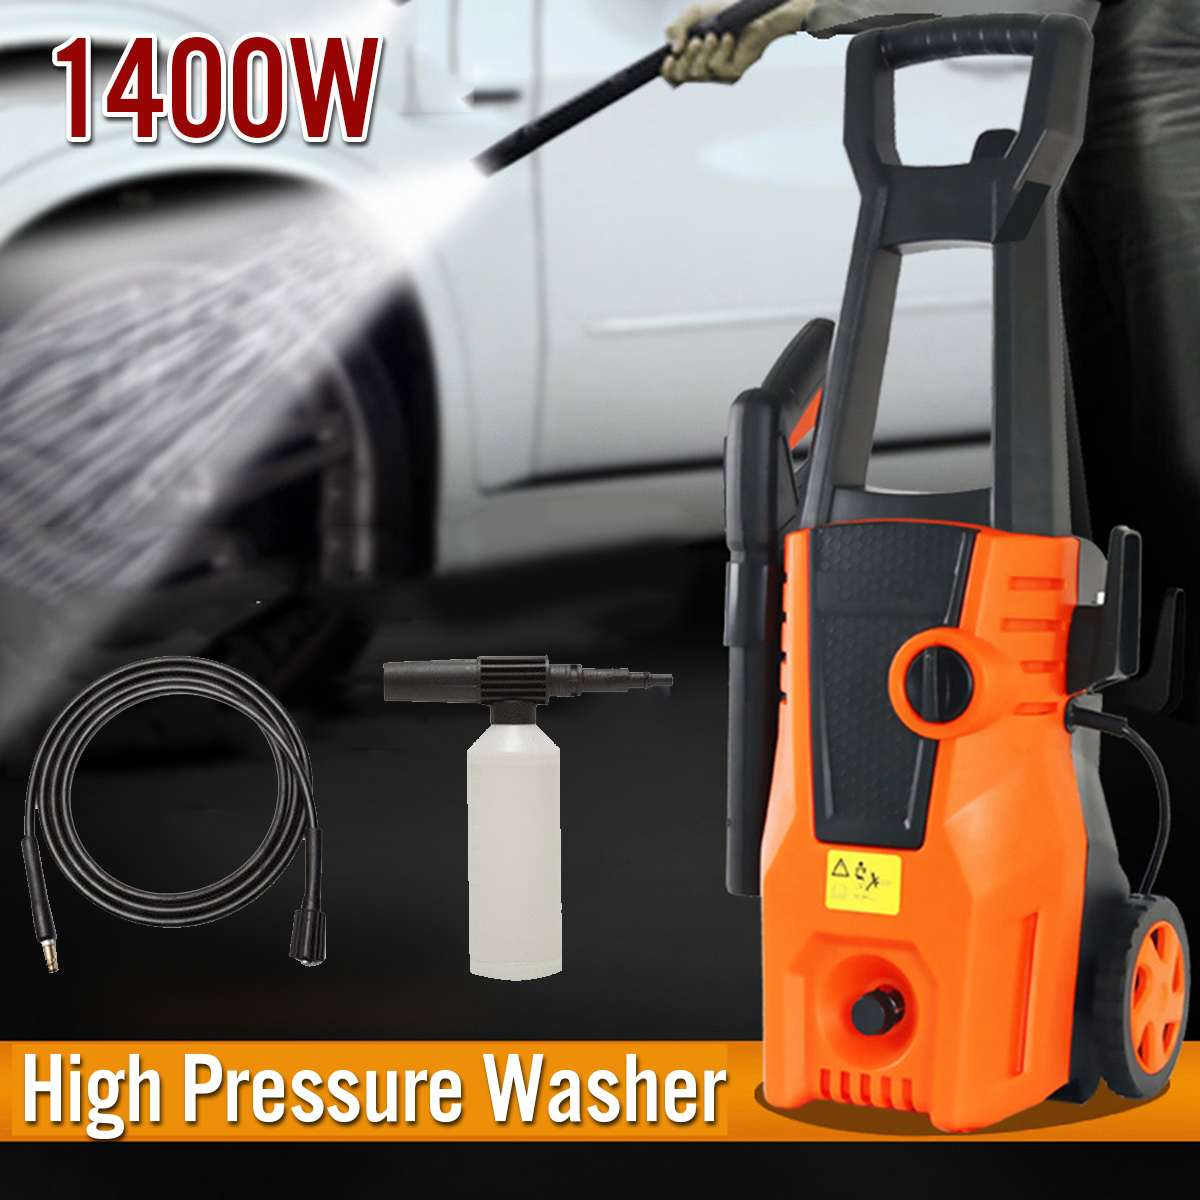 Spray-Gun Detergent-Bottle Car-Washer Turbo-Water-Hose Self-Washing-Machine High-Pressure-Cleaner title=